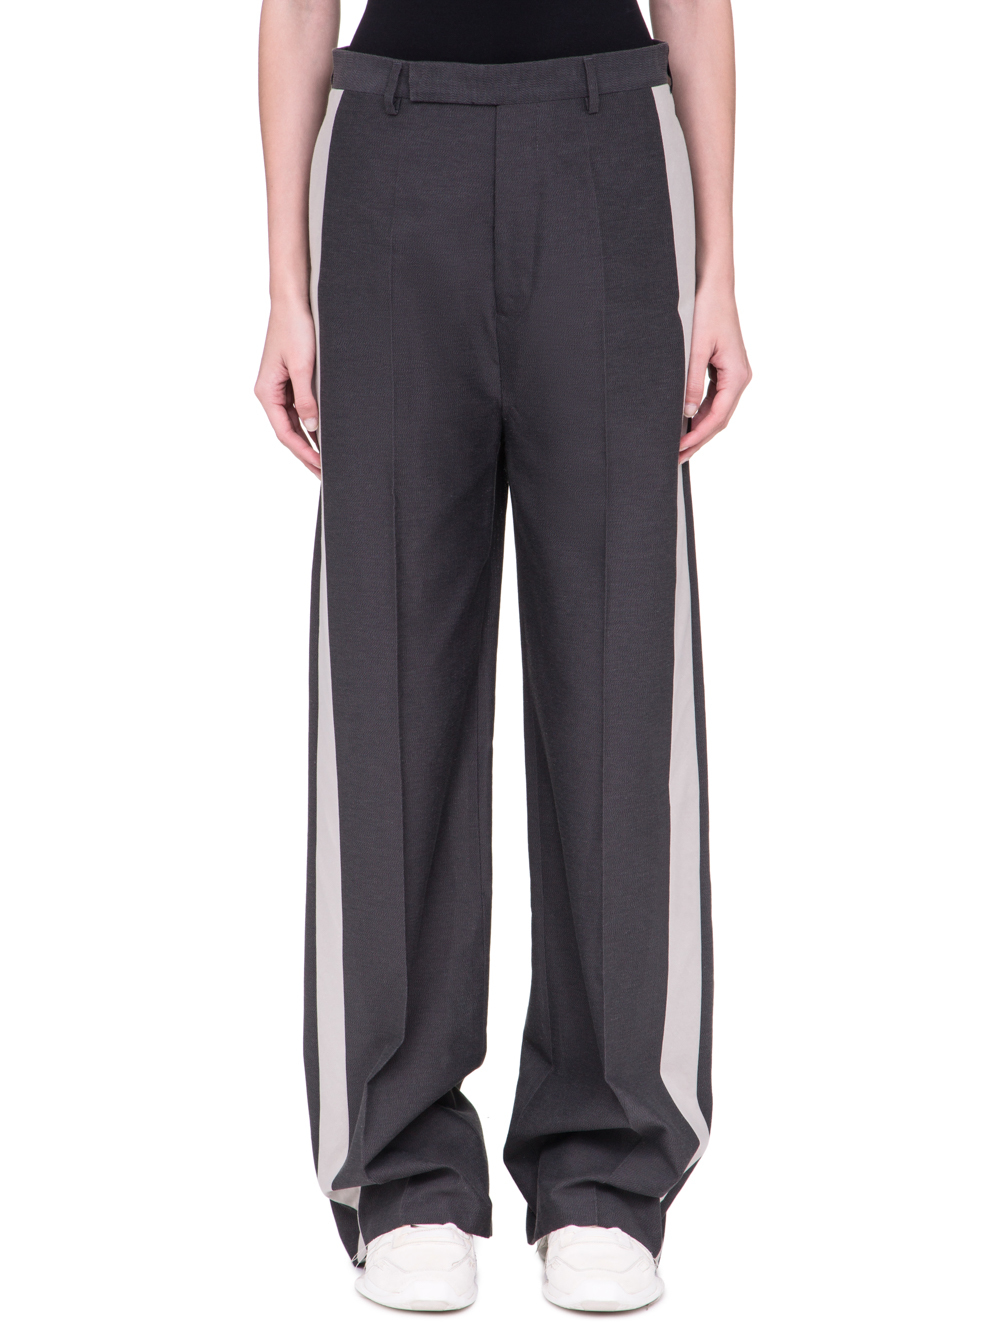 RICK OWENS SS19 BABEL LOOSE TUX TROUSERS IN BLUEJAY